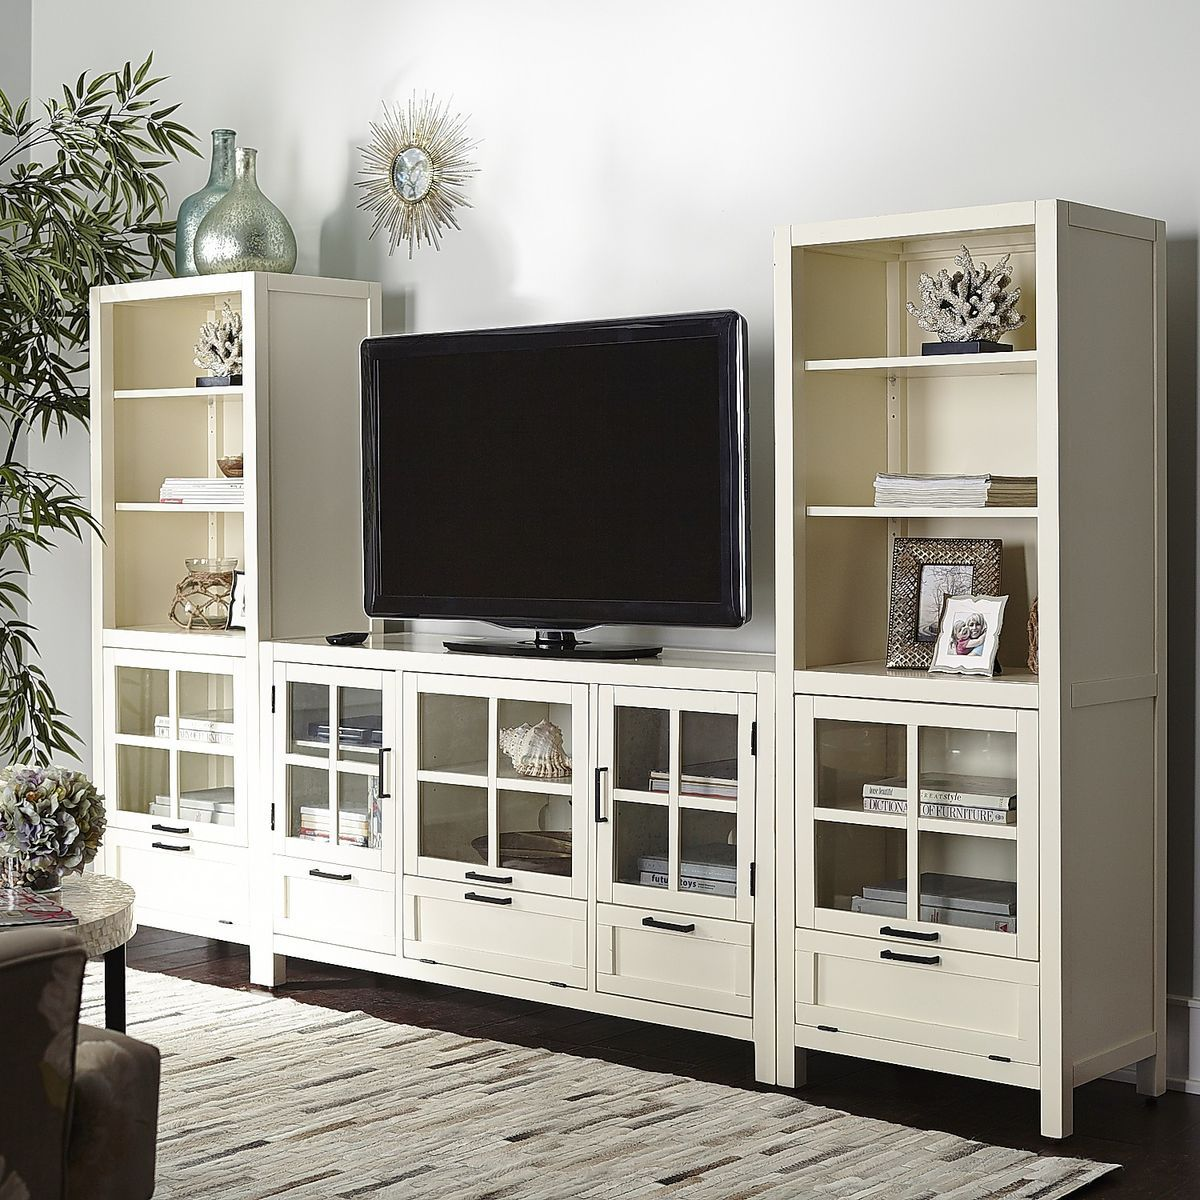 Pier One Living Room Sausalito Bookcase Media Tower Antique White Pier 1 Imports